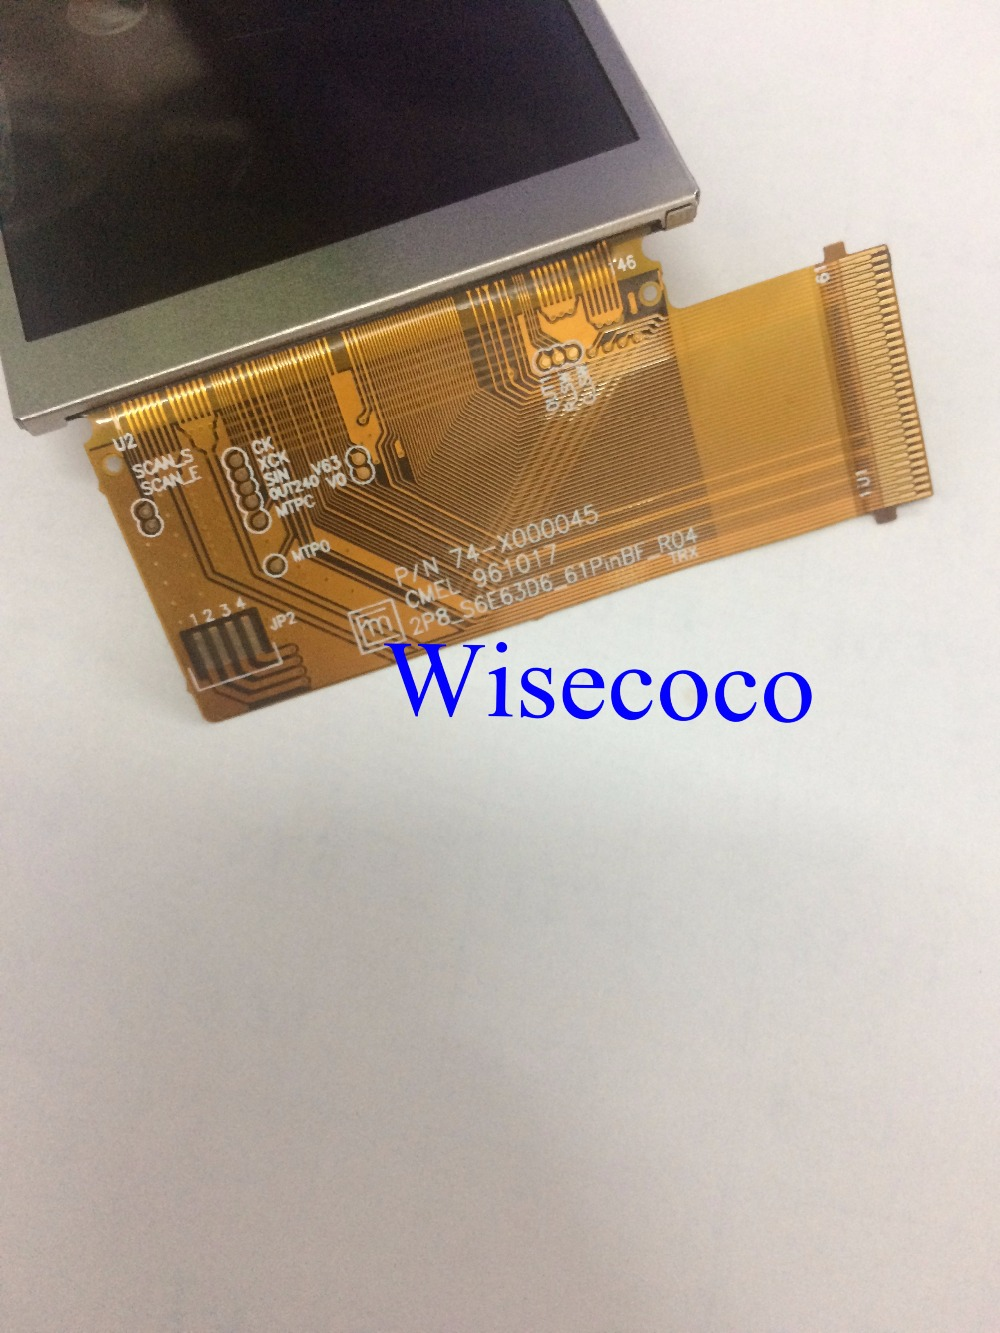 Image 2 - Original 2.83 inch lcd dispaly P/N 74 X000045 CMEL 960914 2P8_S6E63D6_61PinBF_R03 C0283QGLC T C0283QGLD T C0283QGLZ oled screen-in Mobile Phone LCD Screens from Cellphones & Telecommunications